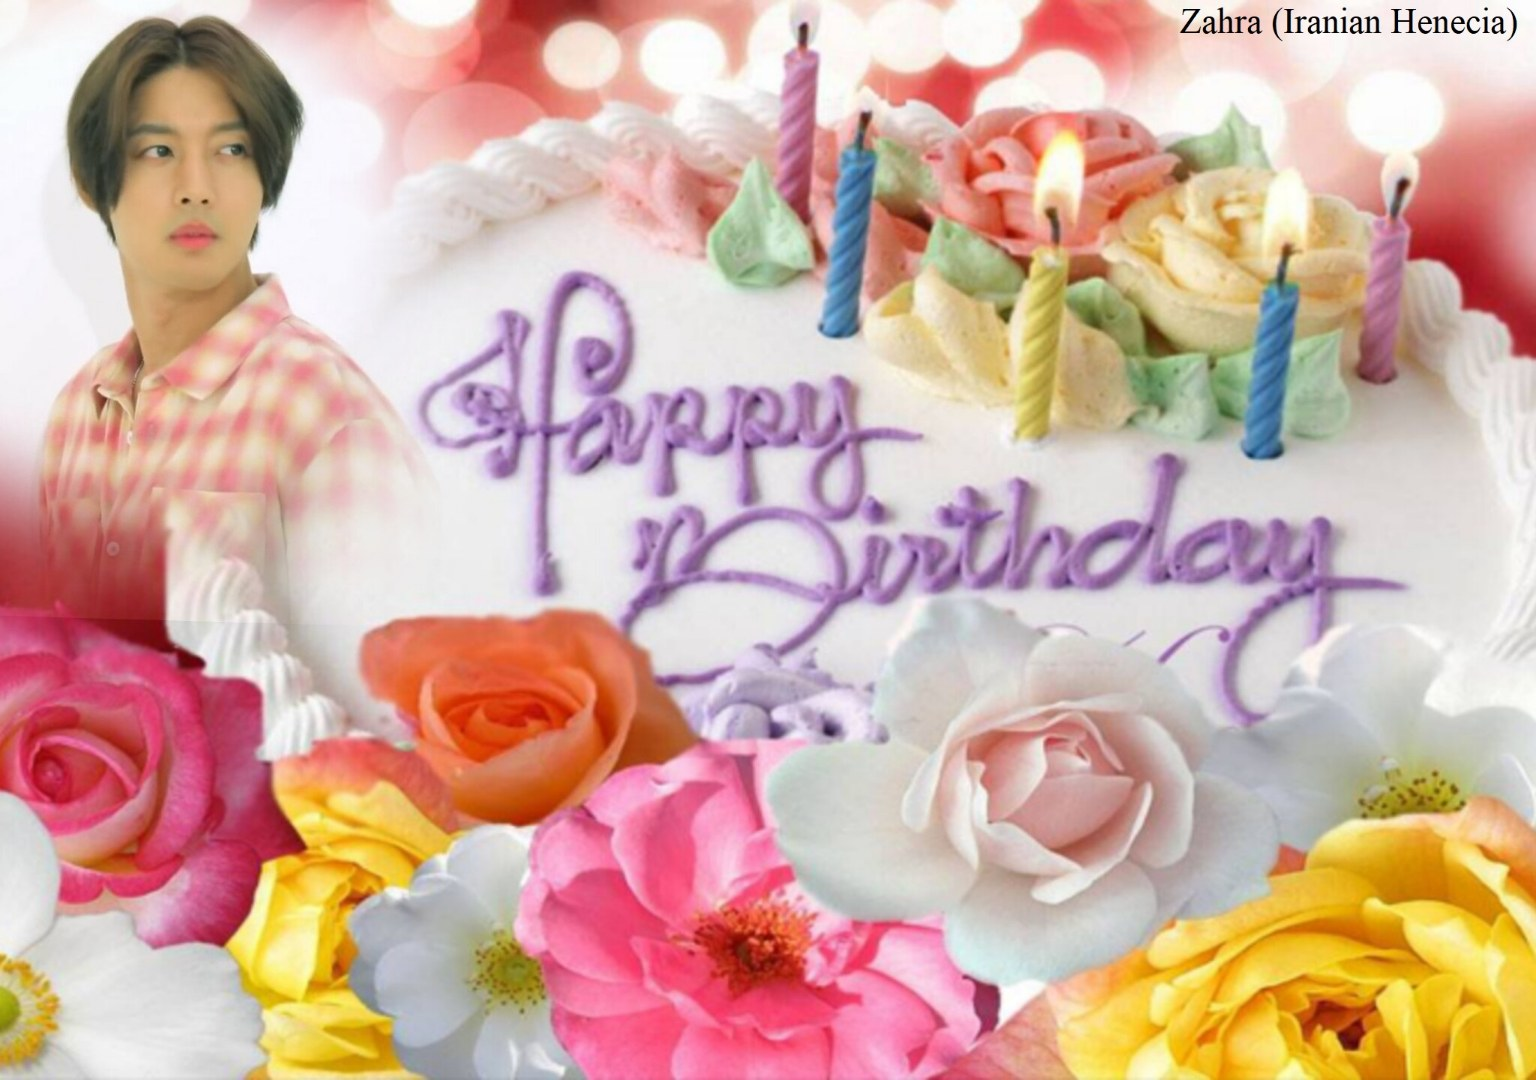 (My Fanart from Happy 32th Birtday of KHJ (6